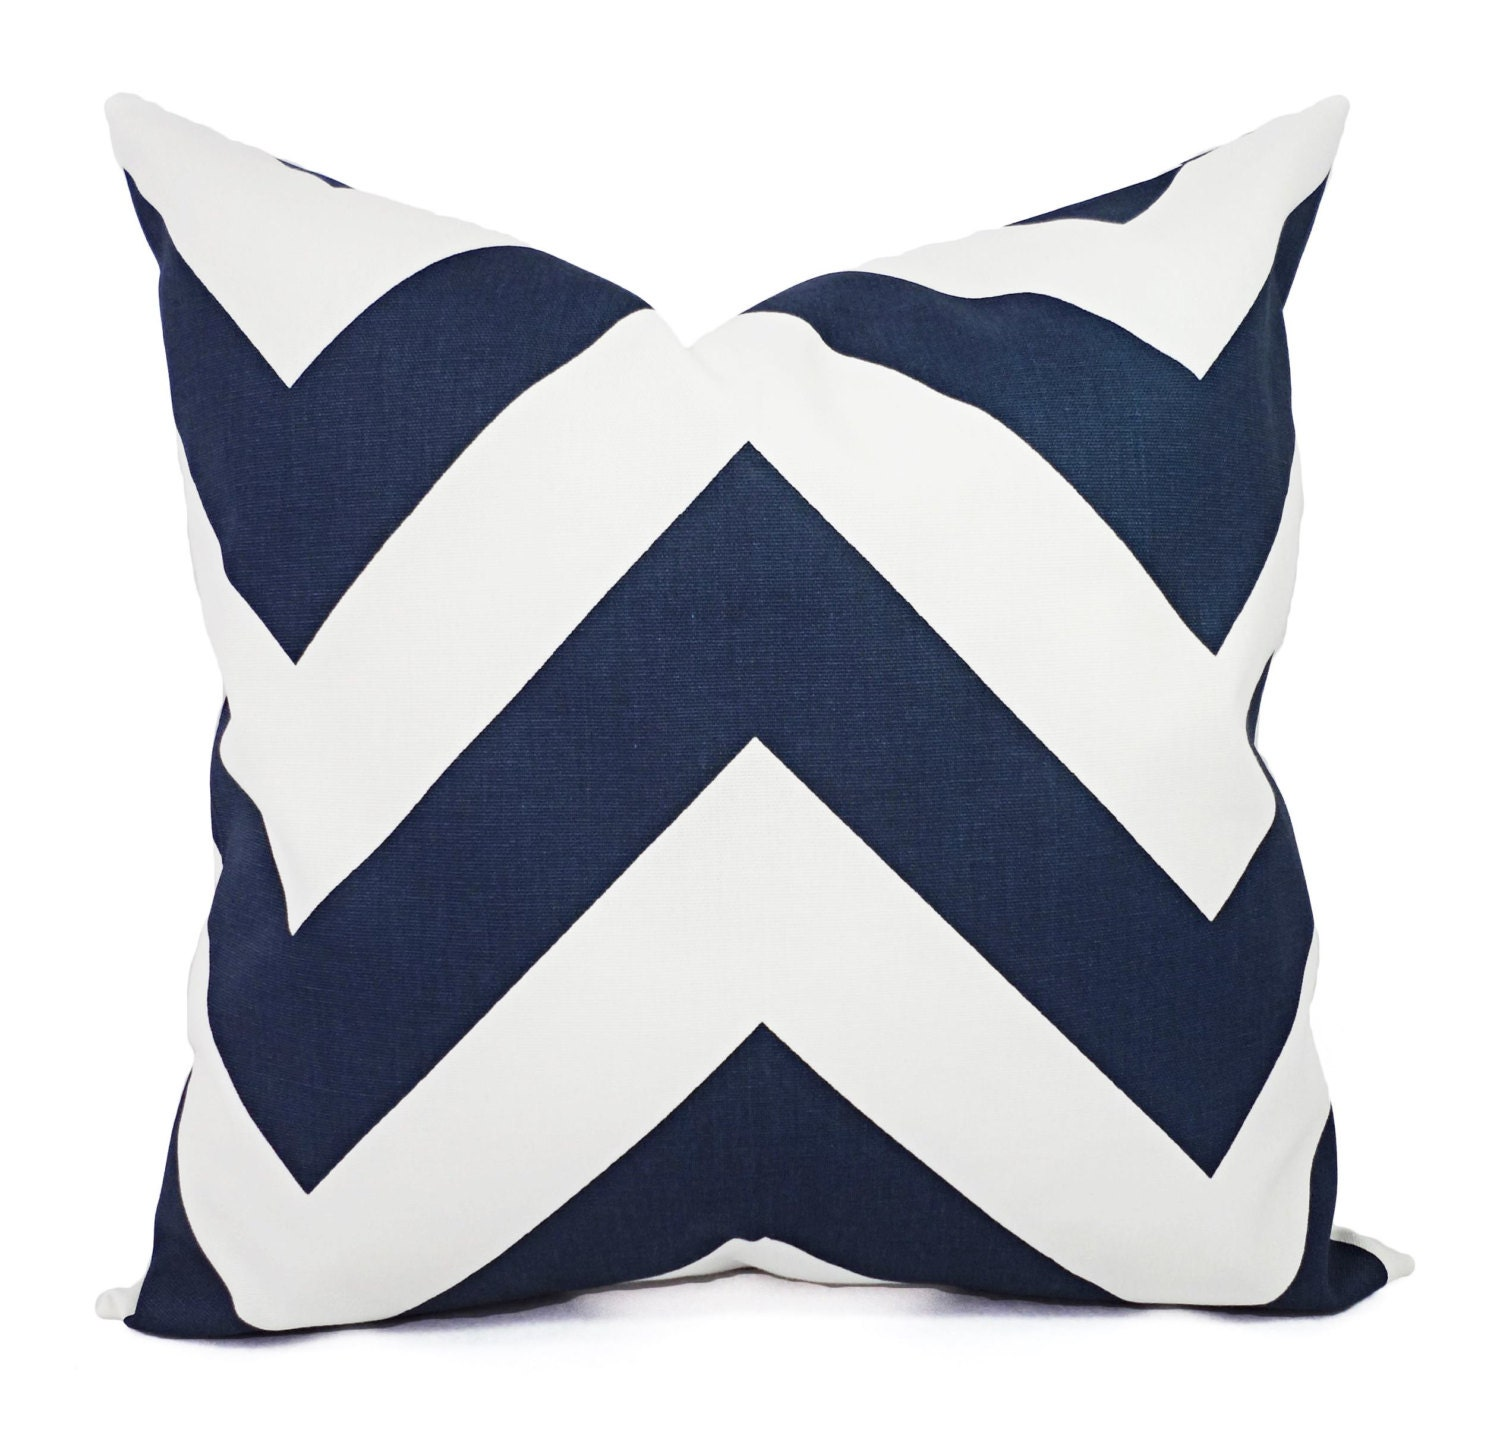 Navy Blue Throw Pillow Covers : Blue Decorative Pillow Covers Two Navy by CastawayCoveDecor